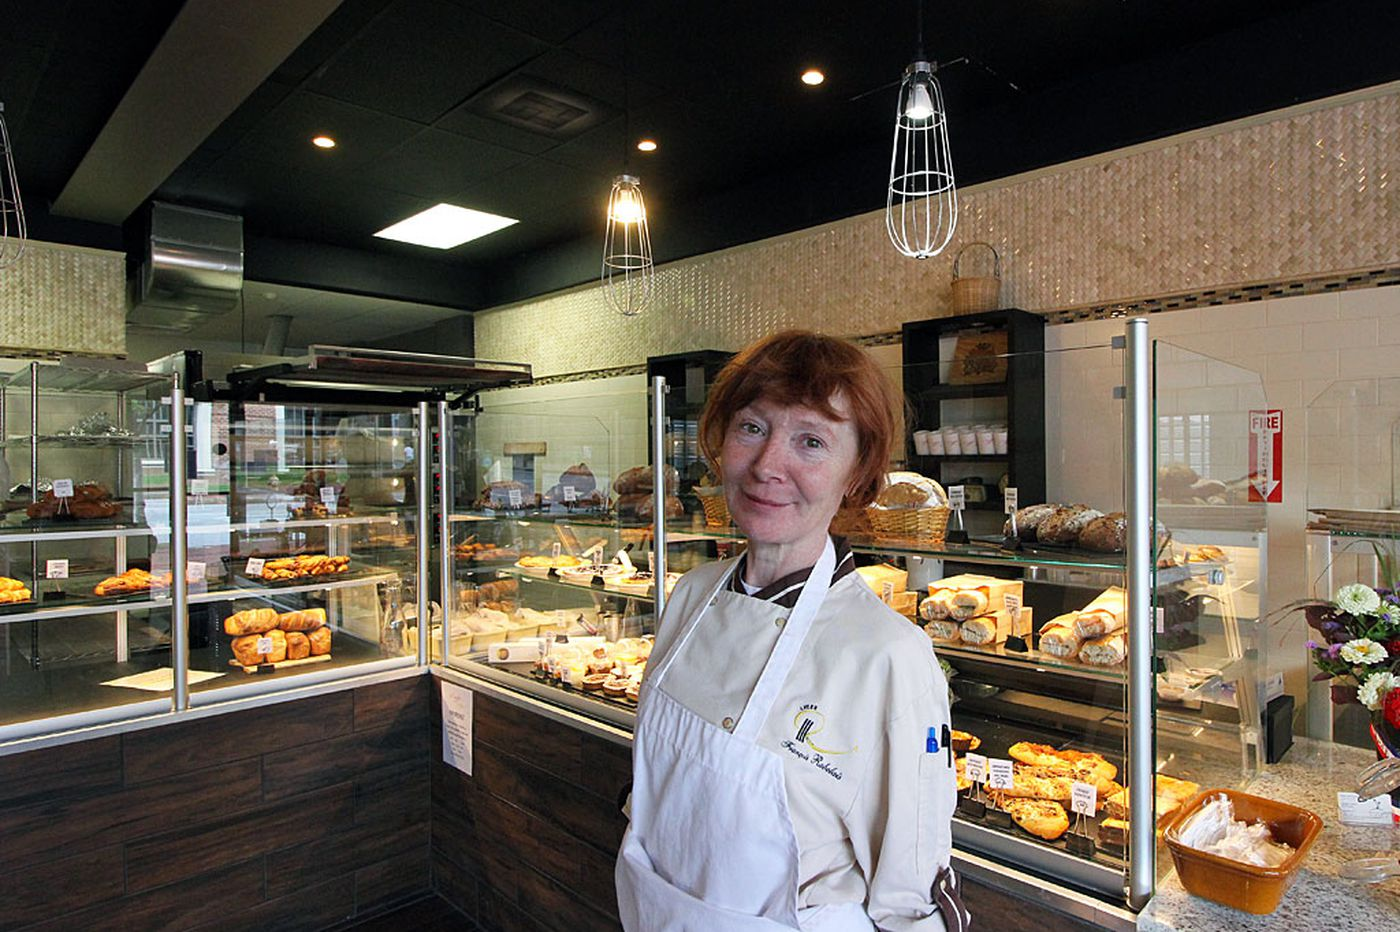 Uncertain future for popular French bakery La Baguette Magique as owner faces cancer treatment